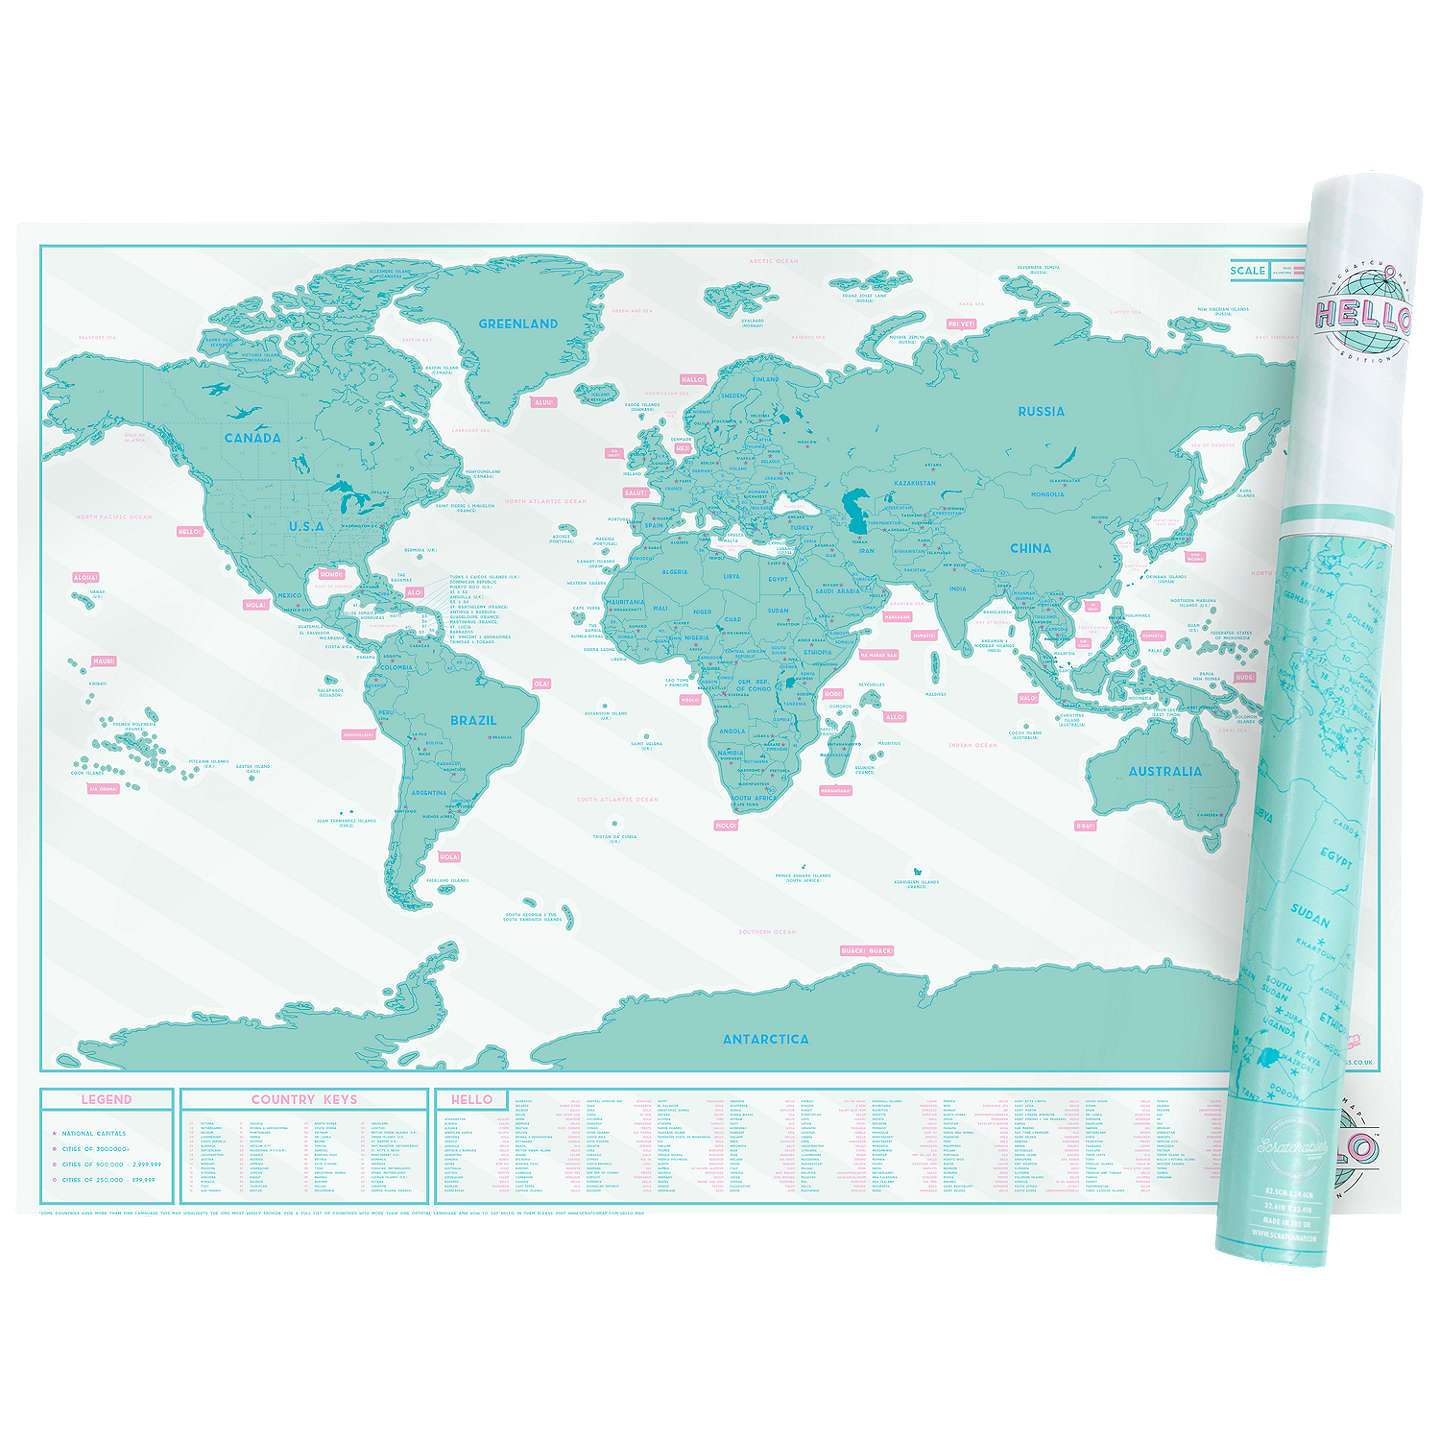 Luckies scratch map hello edition at john lewis buyluckies scratch map hello edition online at johnlewis gumiabroncs Image collections